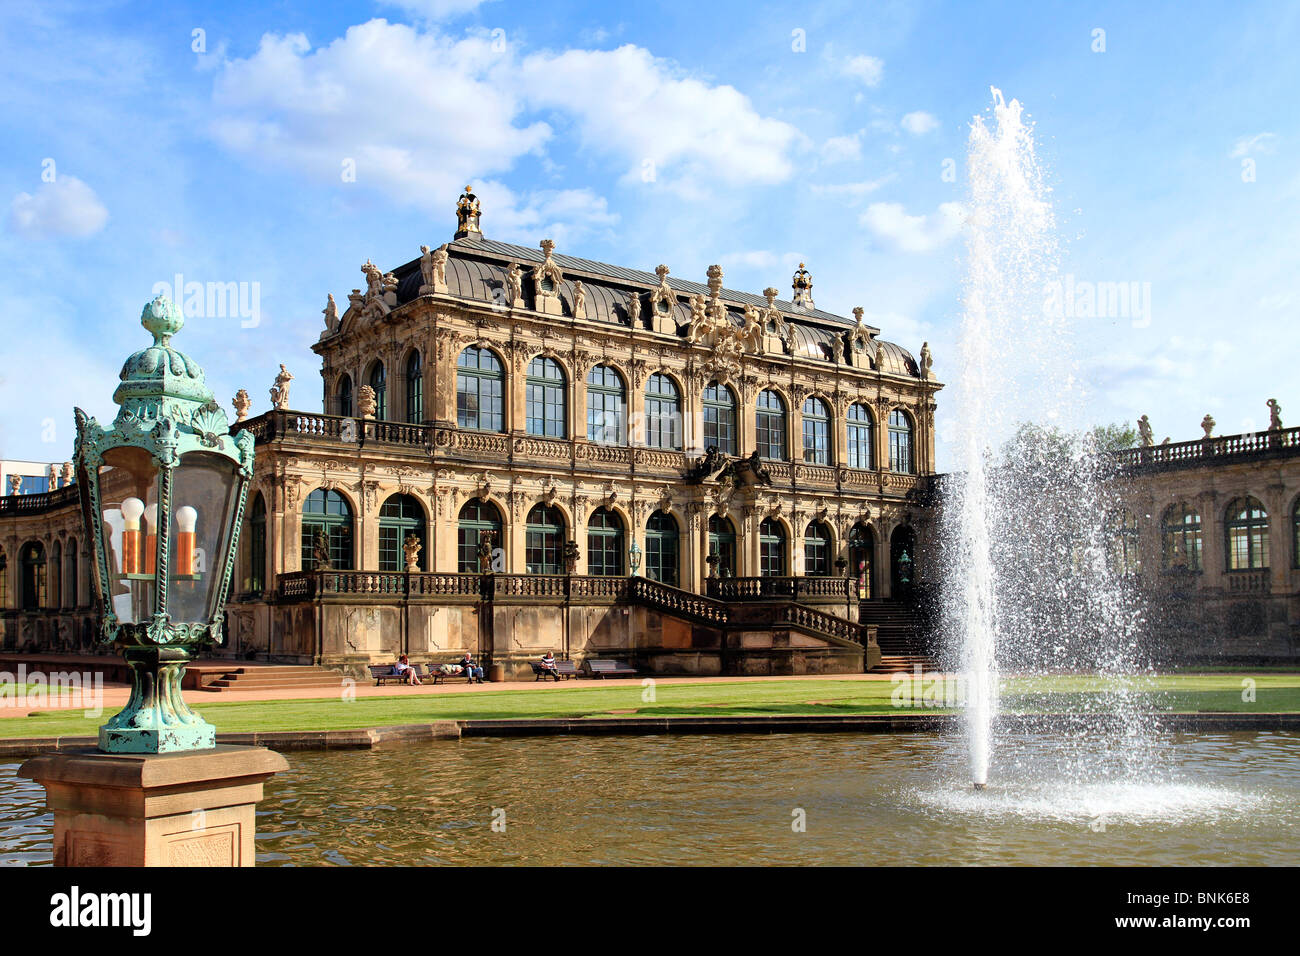 Zwinger Palace in Dresden, Germany - Stock Image